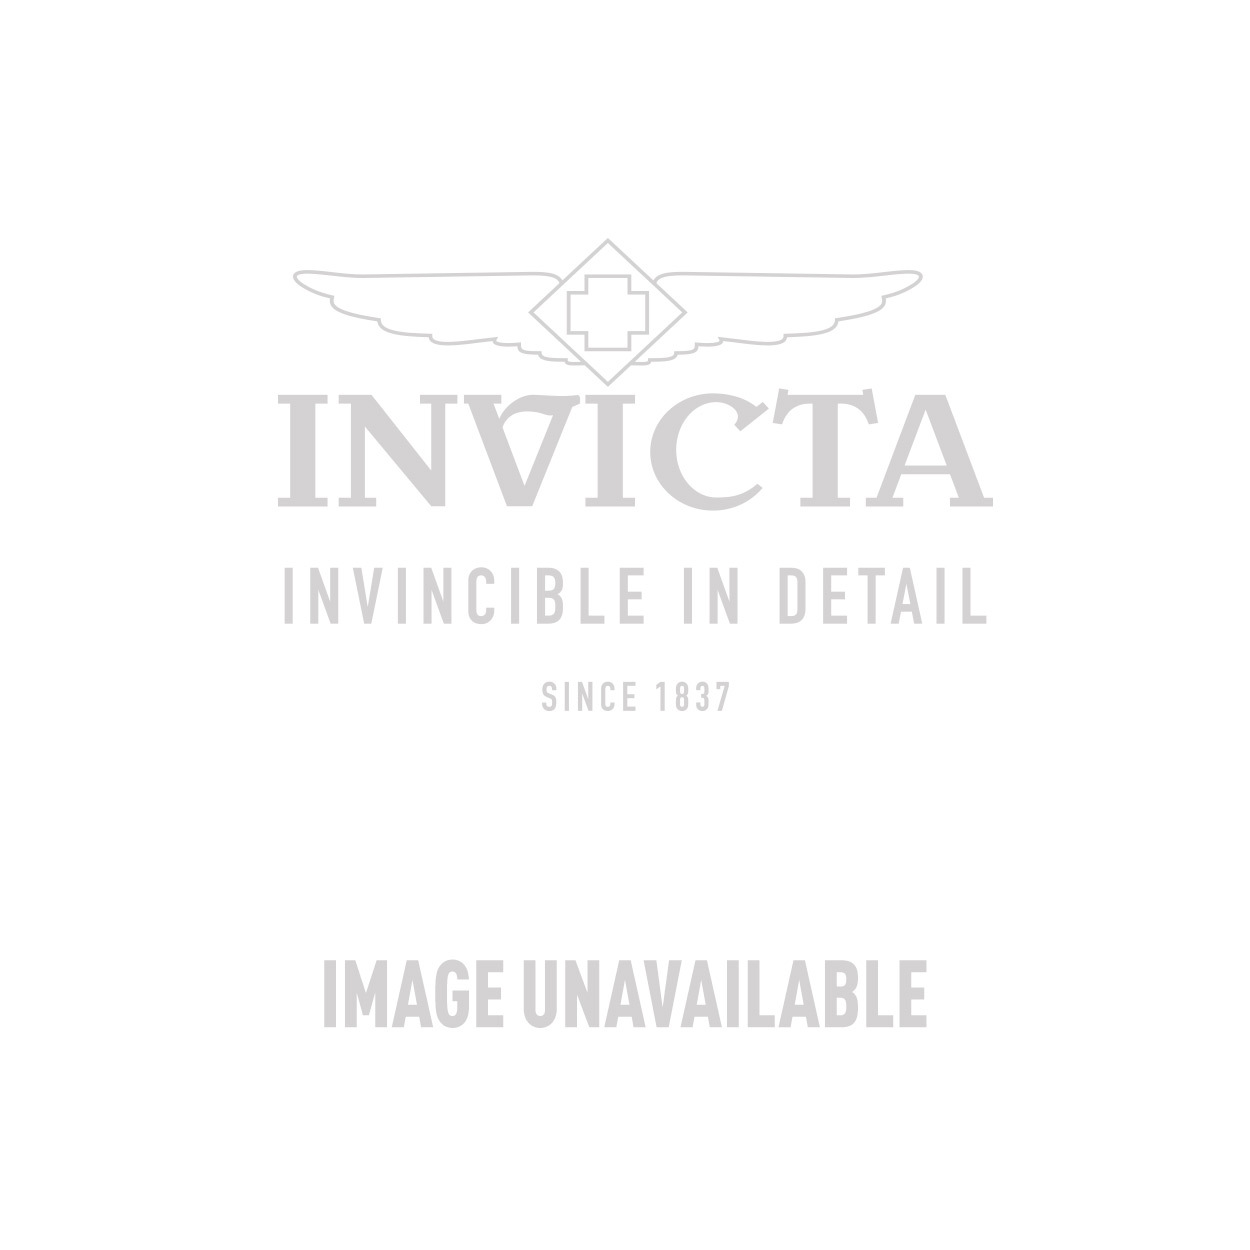 Invicta Sea Base Model 20363